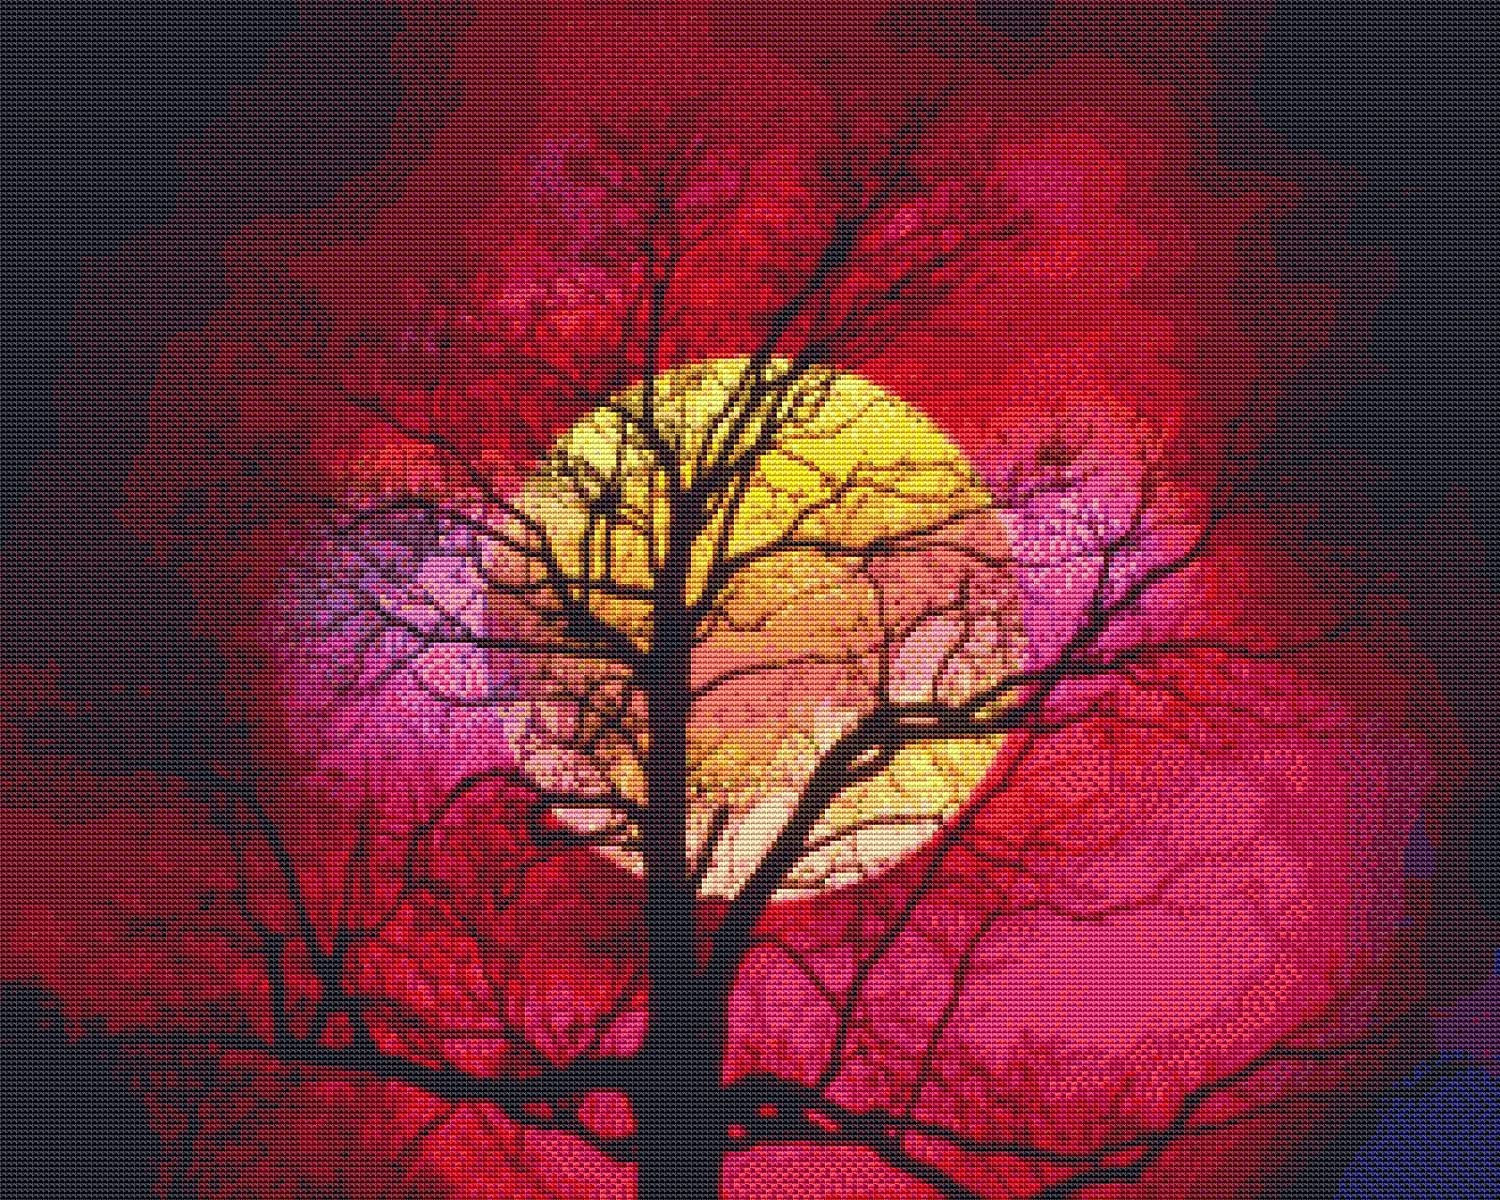 Nature's Finest No. 30 Cross Stitch Pattern Beautiful Moon against Tree Silhouette Cross Stitch Pattern only (Not a kit) StitchX Cross Stitch 4336932957